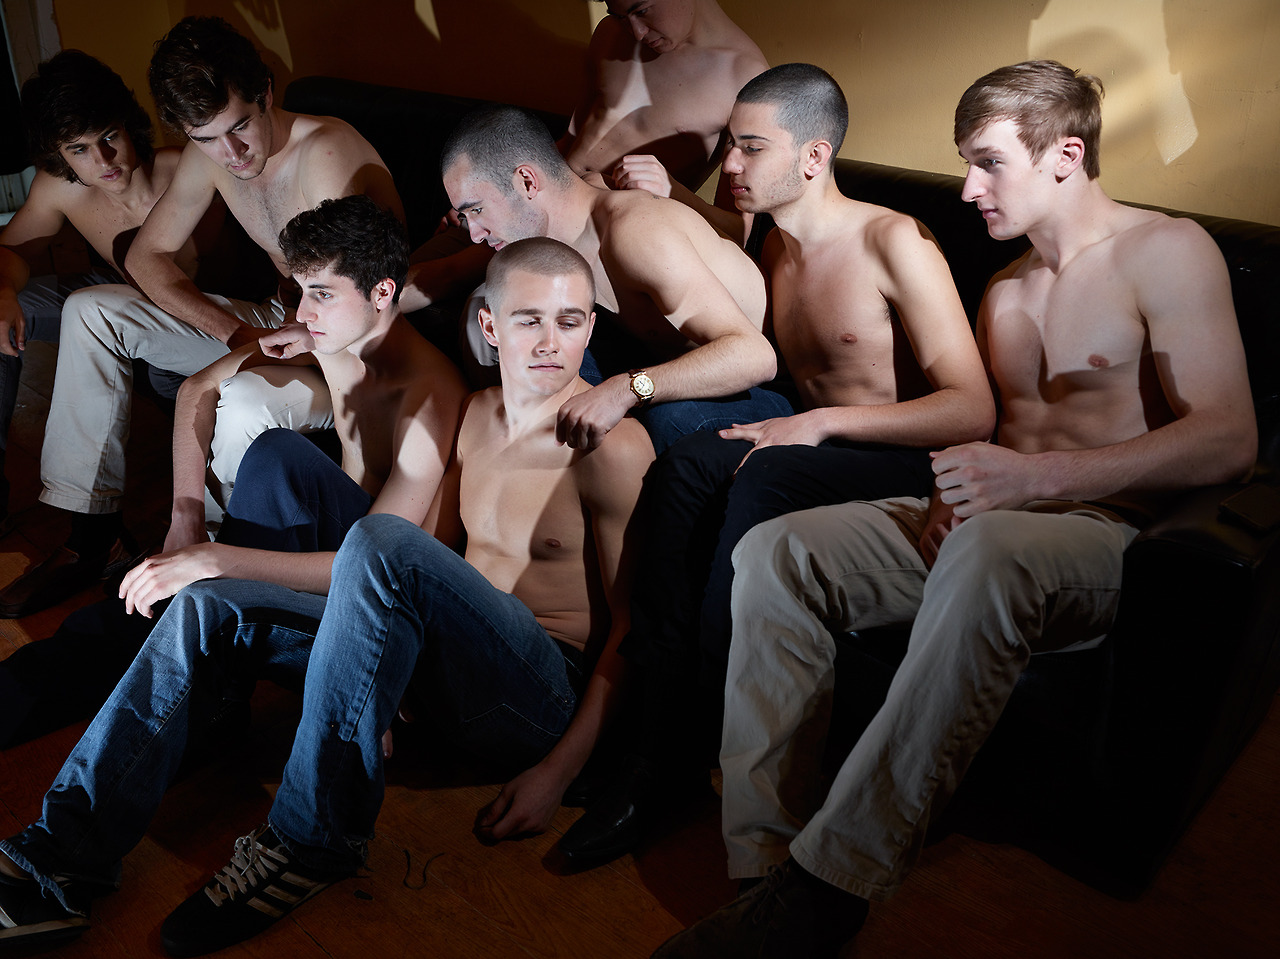 latitudechicago: Panel Discussion: The role of MFA Programs on young working artists.At LATITUDE, JULY 24TH, 7:30PM CST. Photograph: Marzena Abrahamik,Pledge Boys,2013. Check out this panel discussion, which will feature Justin Schmitz & Marzena Abrahamik (whose work is currently on view inShannon) and Johalla Projects Director/Founder Anna Cerniglia, among some awesome others!